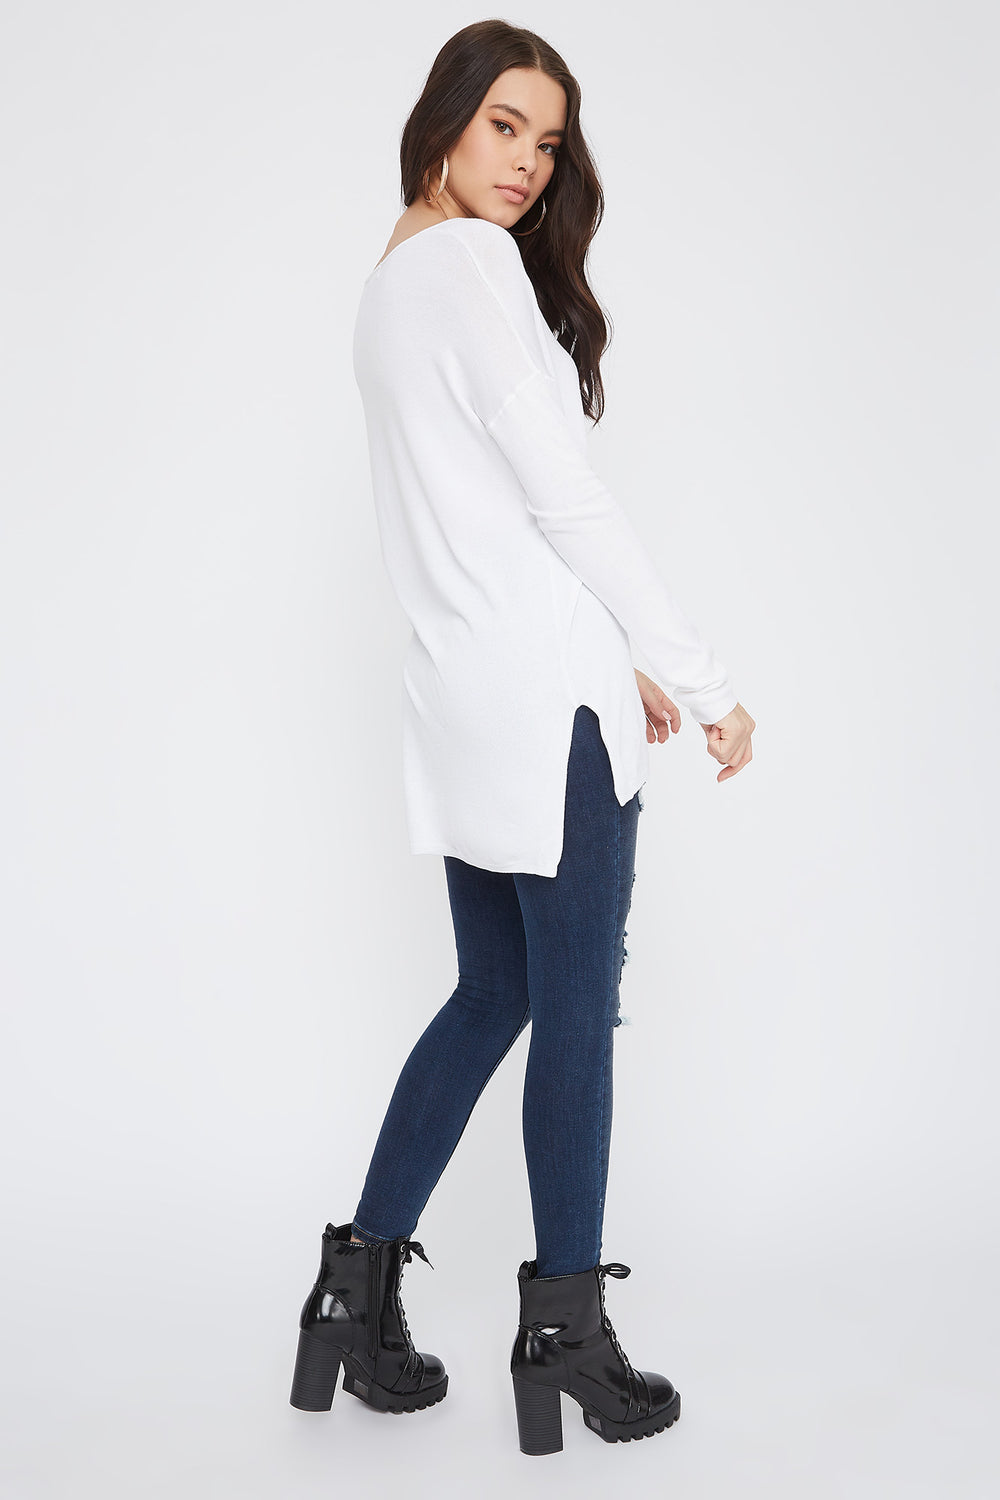 Knit V-Neck High-Low Long Sleeve White